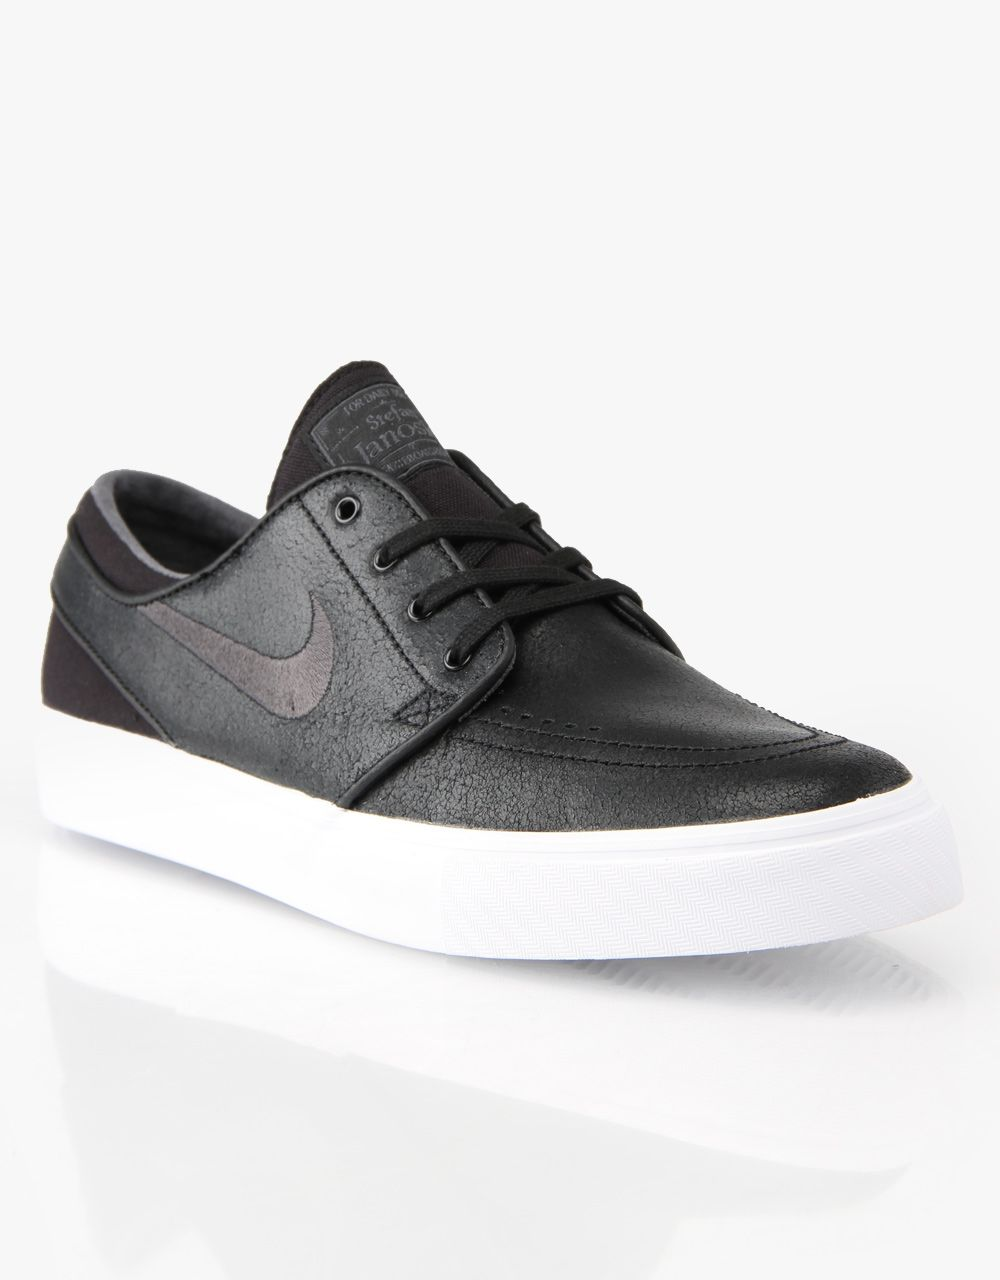 09d9bbdaccd4 Nike SB Zoom Stefan Janoski Leather Skate Shoes - Black Anthracite ...